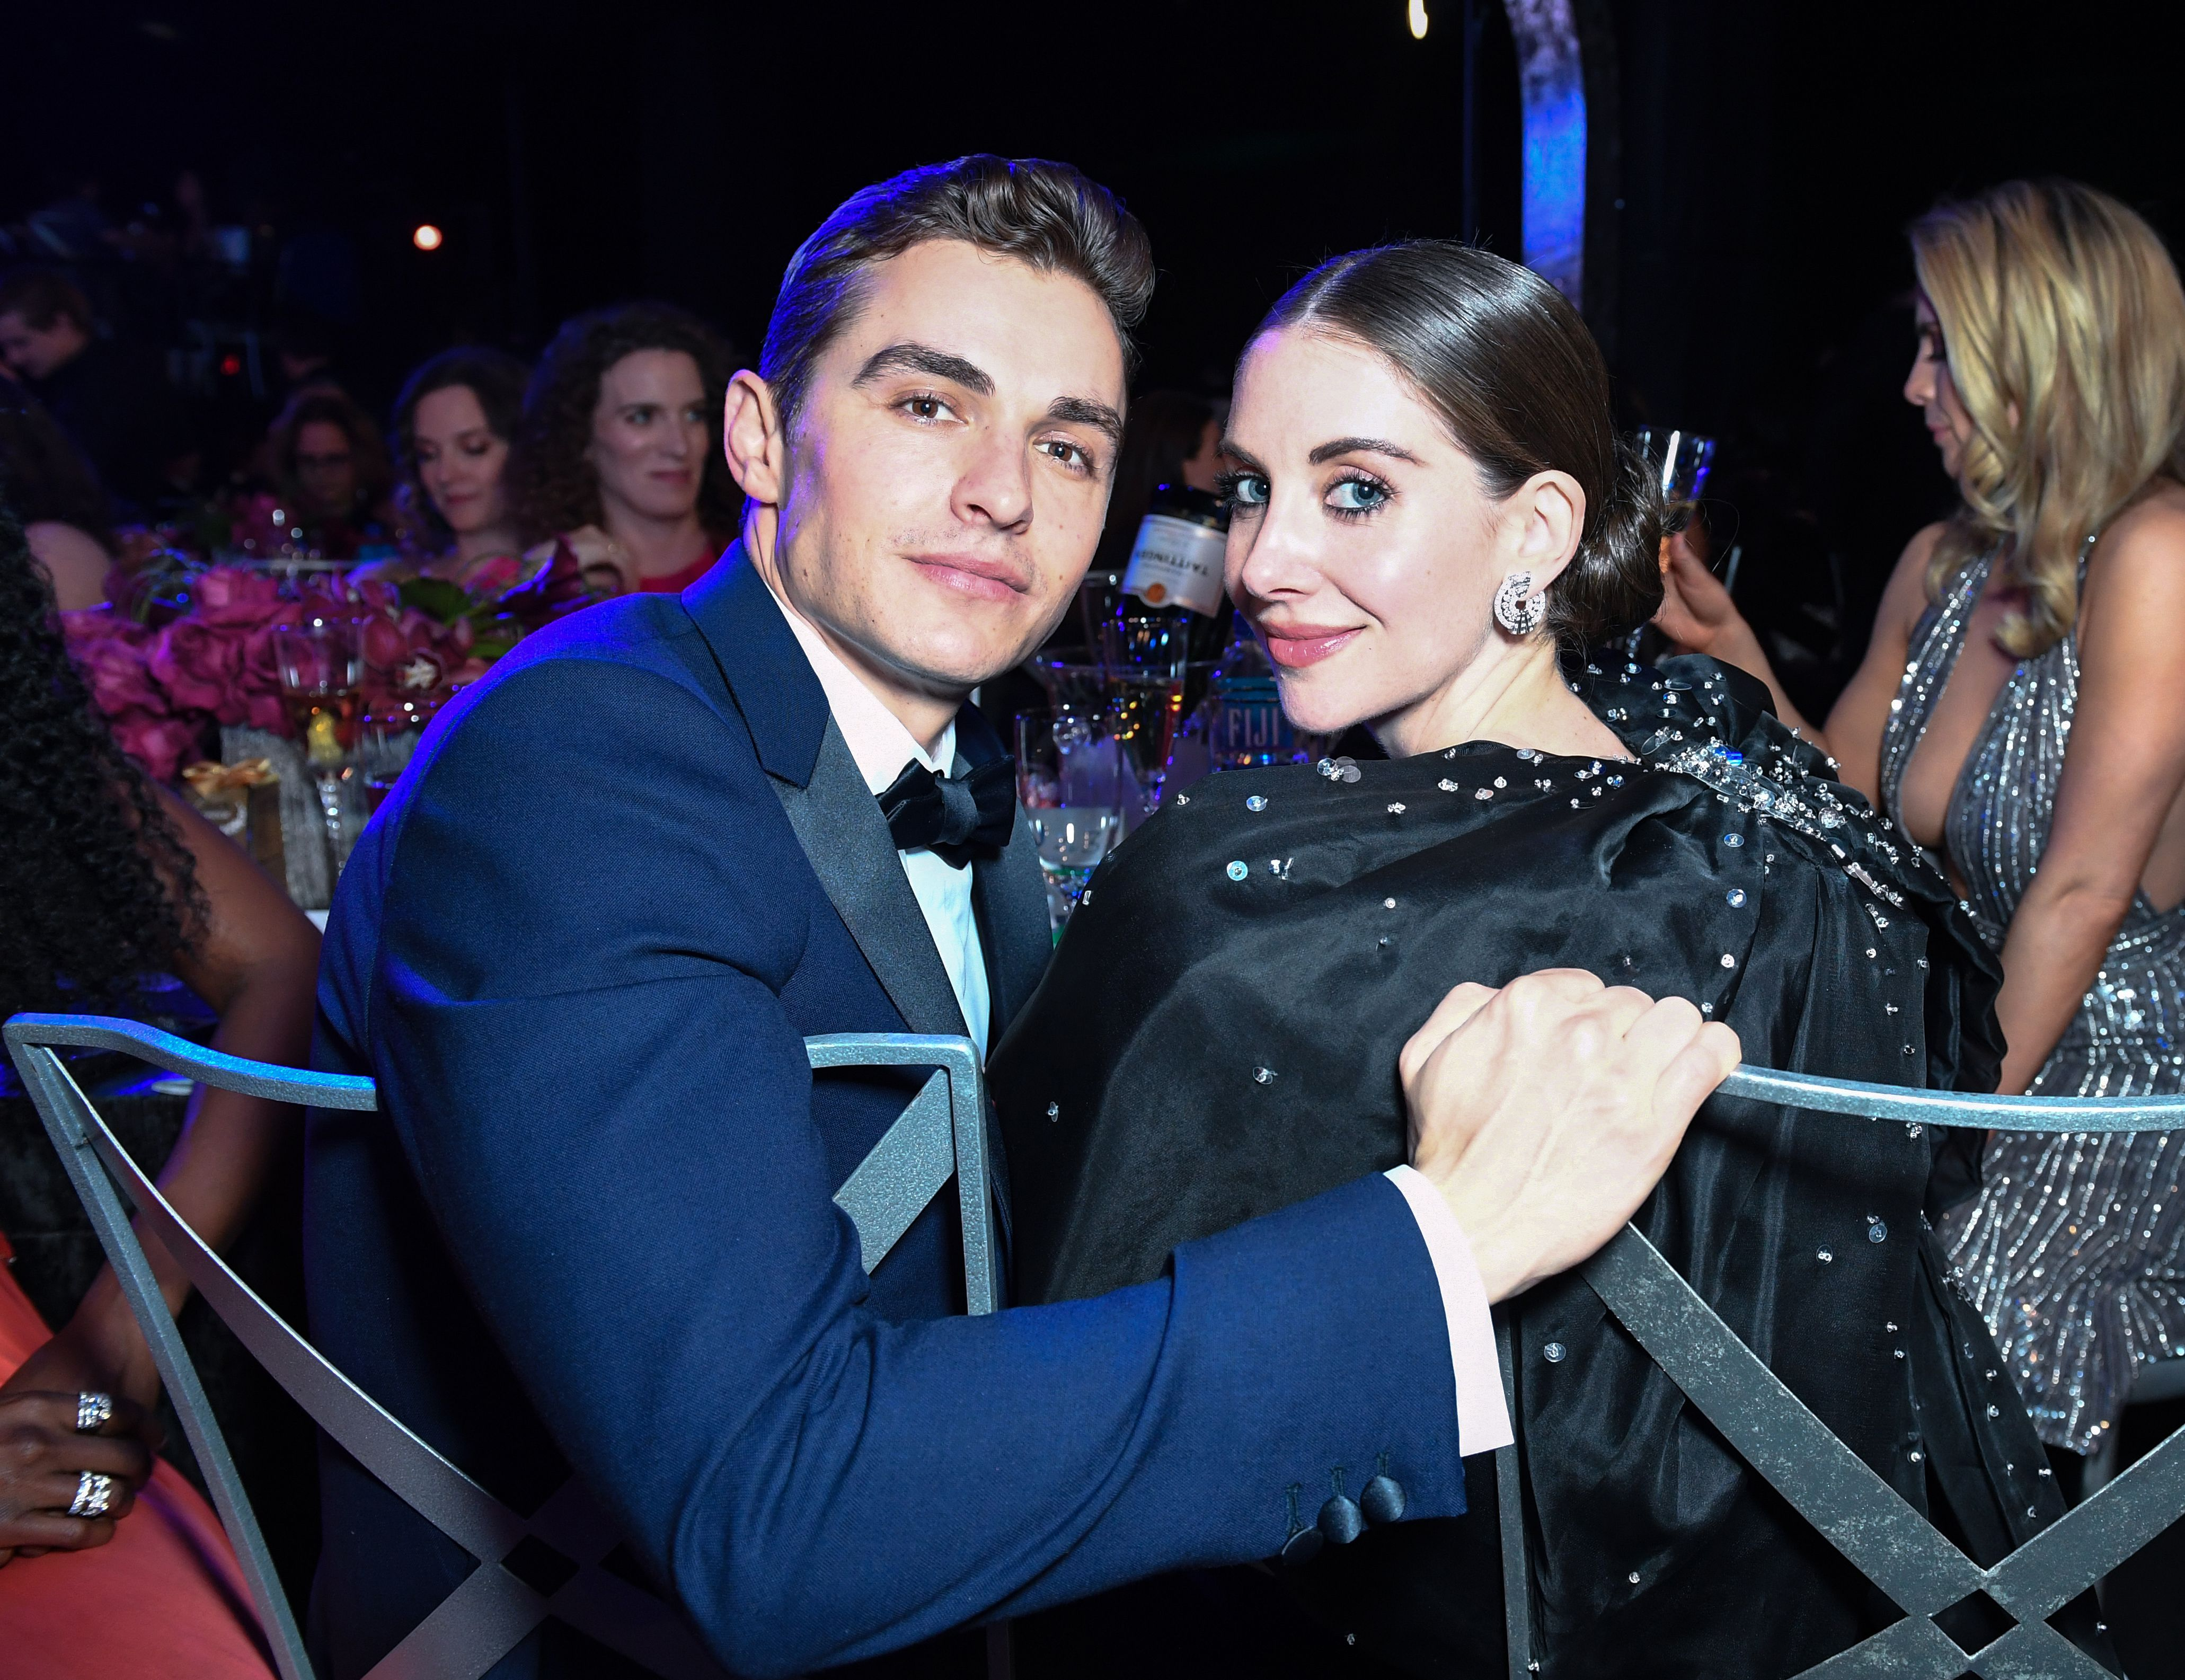 Alison Brie Says She Met Husband Dave Franco During Weekend Of Drugs And Sex